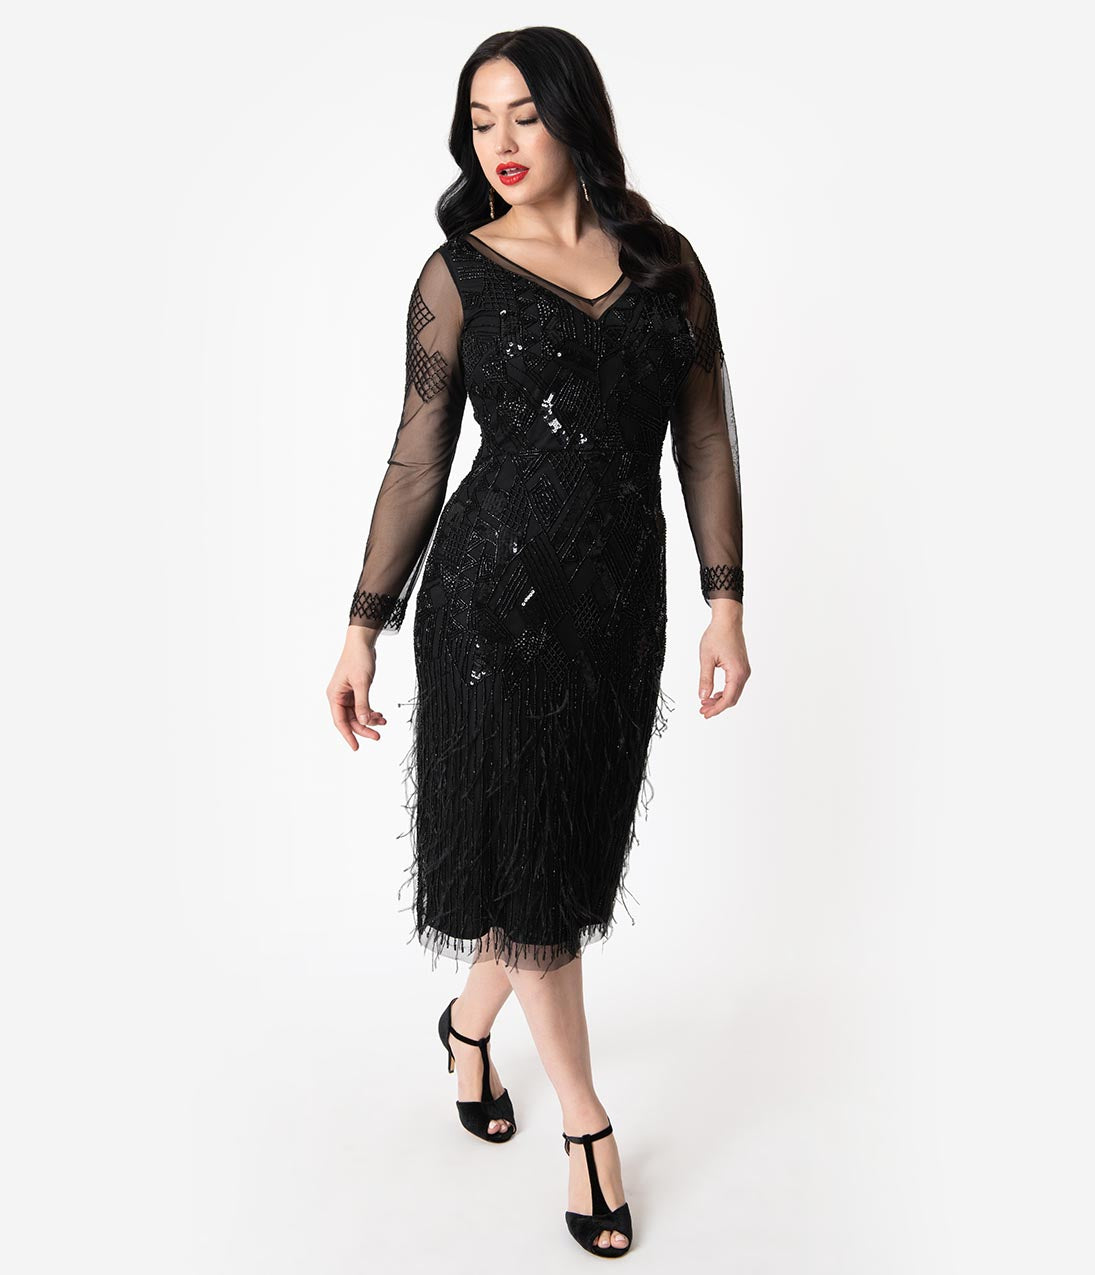 1920s Downton Abbey Dresses 1920S Black Beaded  Feather Long Sleeved Ivy Cocktail Dress $228.00 AT vintagedancer.com